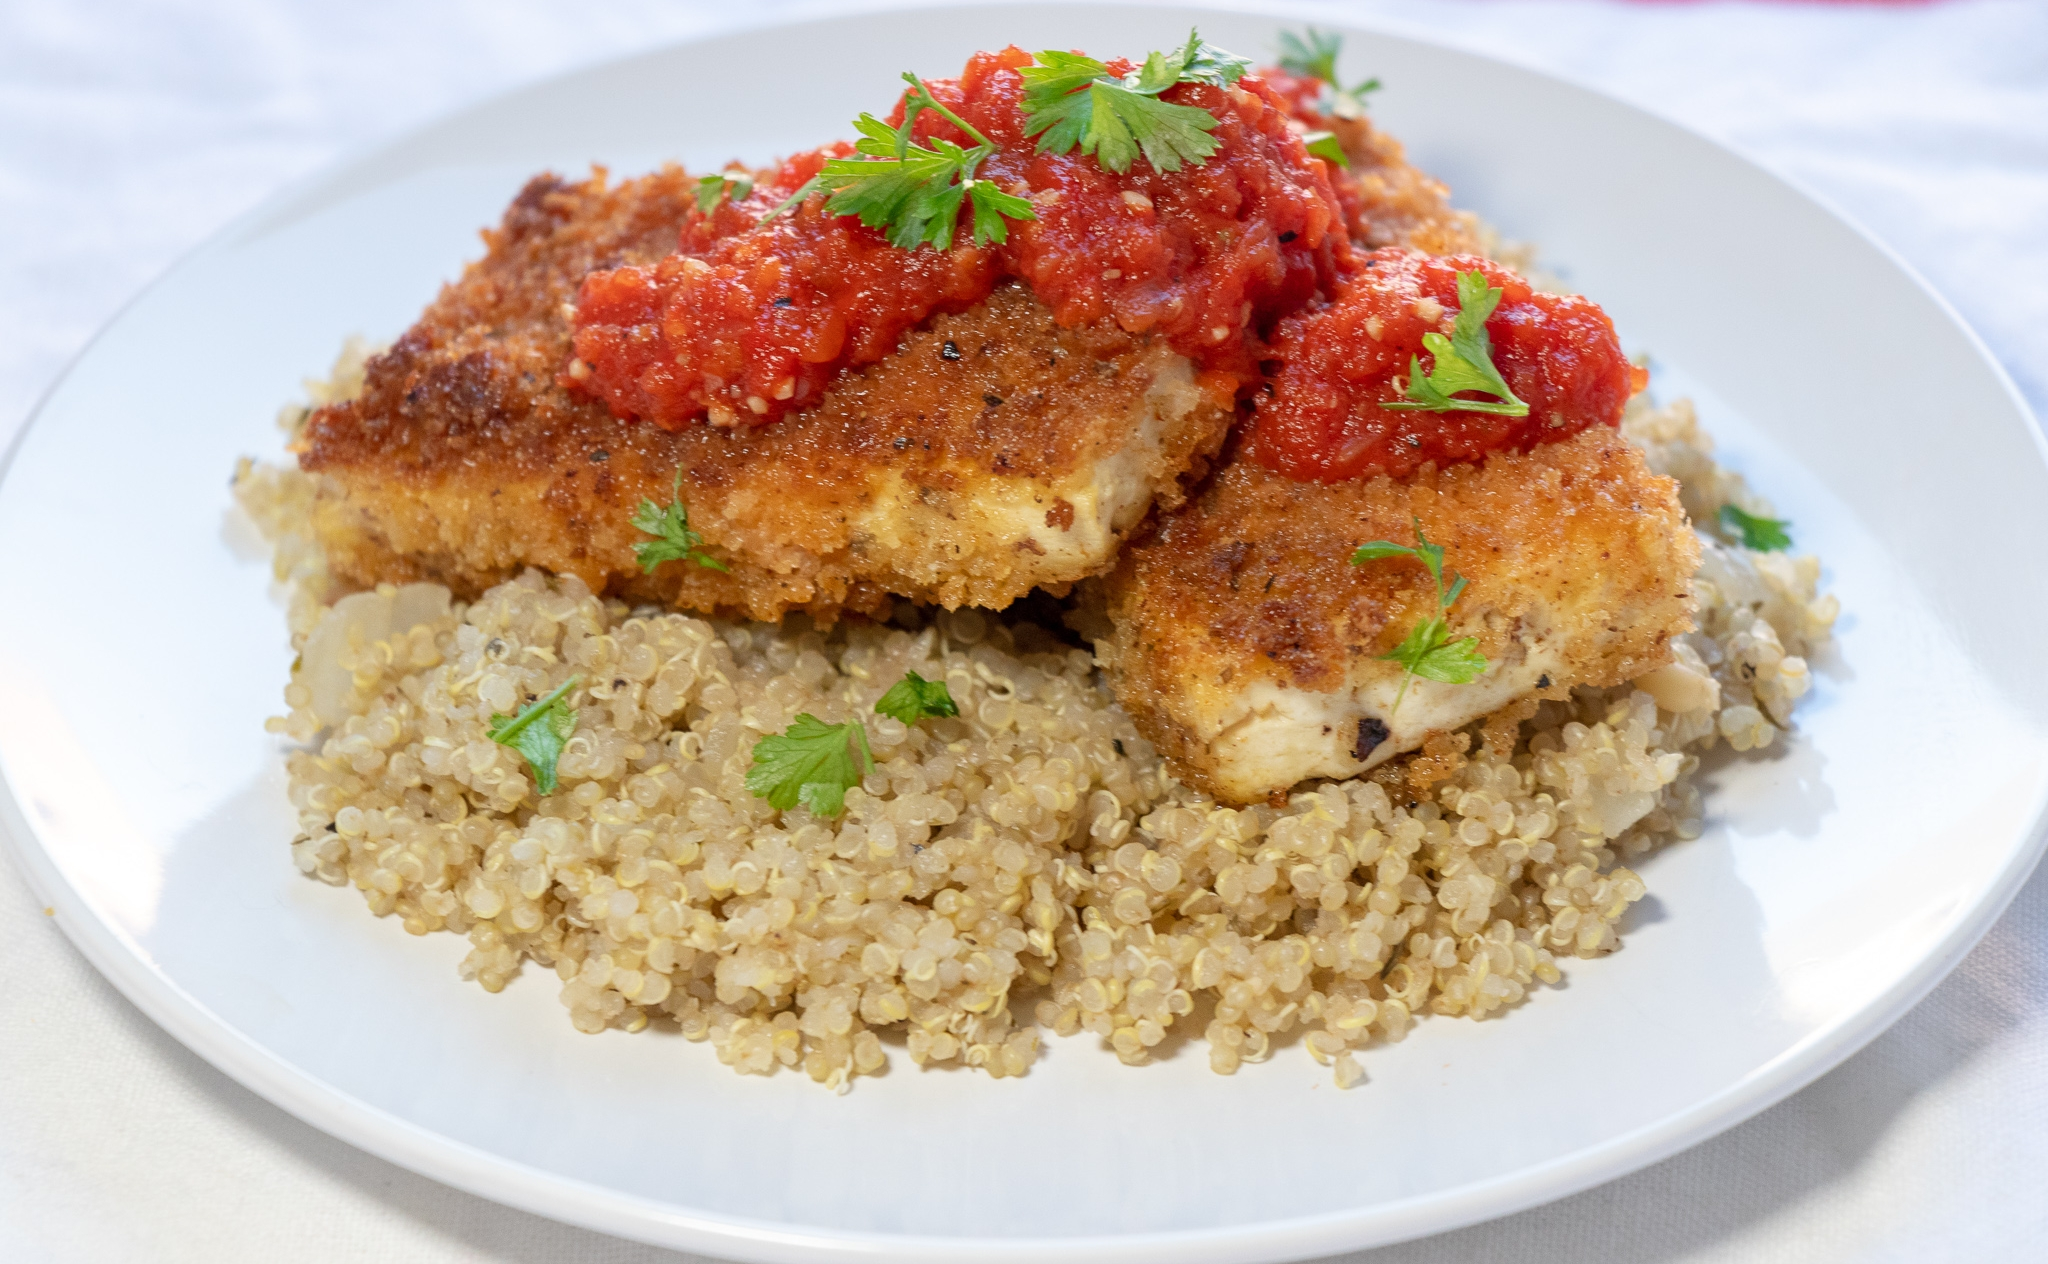 Crispy tofu on a bed of savory quinoa, covered in a delicious red pepper marinara makes for a quick and filling weeknight dinner. You can easily makes this recipe gluten free by using a gf flour blend, and gf panko. You could also use an air fryer to prepare the tofu if you have one, or try baking the tofu pieces if you prefer cooking without oil!